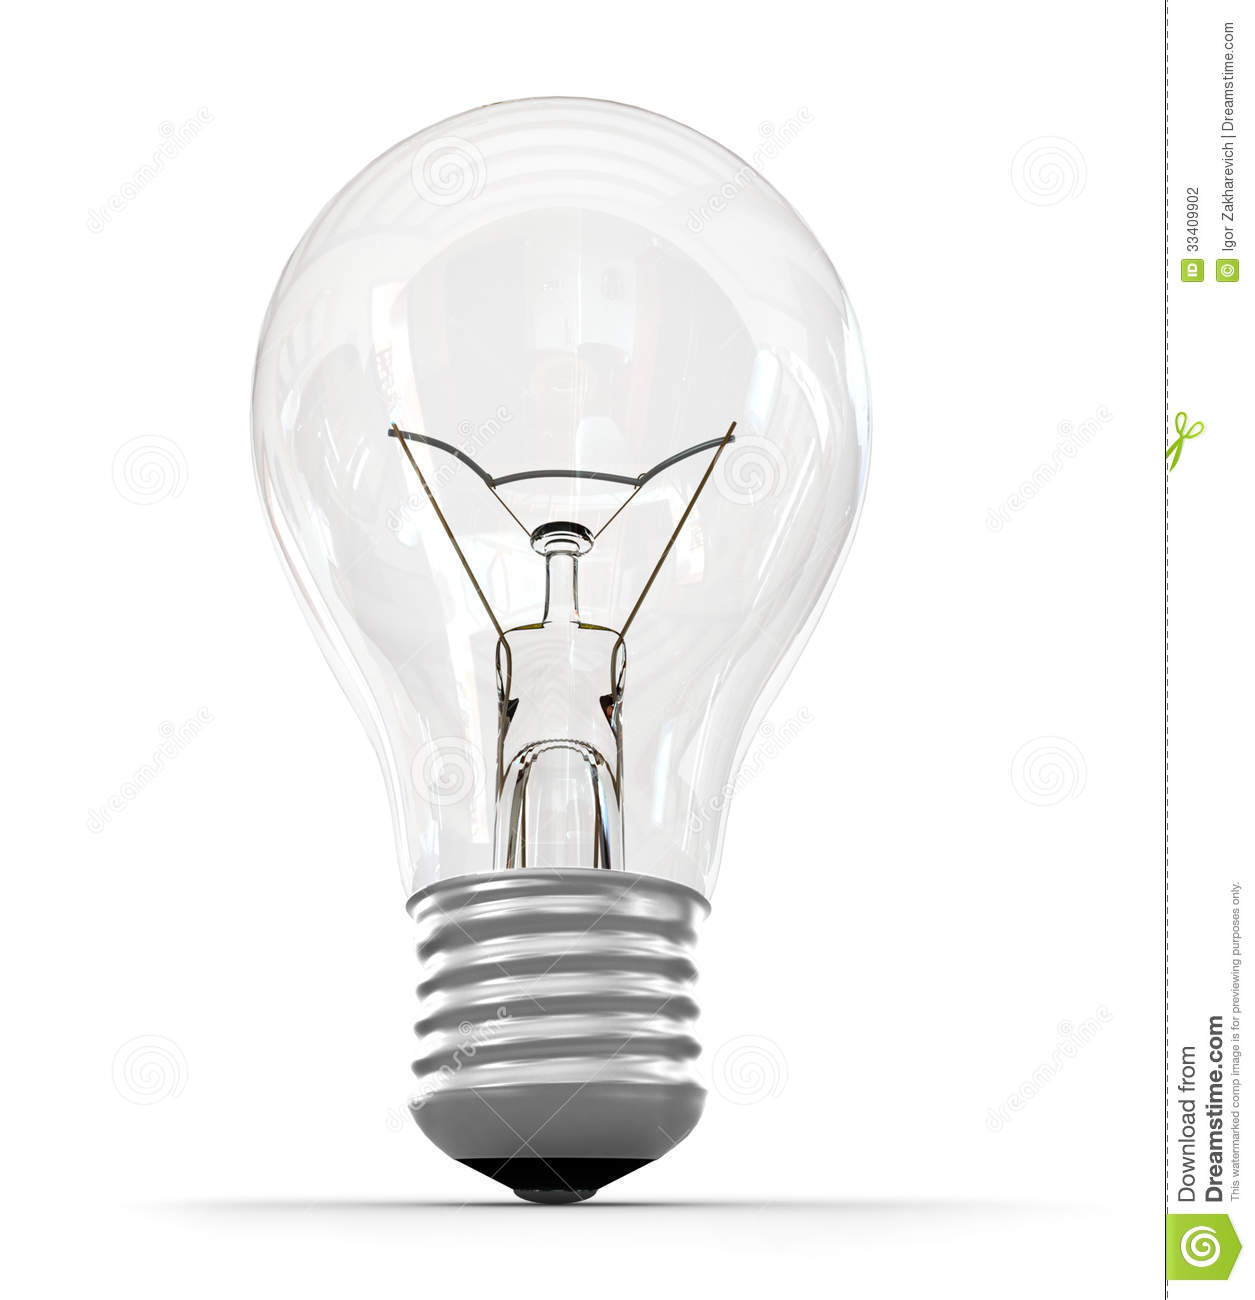 Perfect Light Bulb Stock Photo Image Of Equipment Brightly 33409902